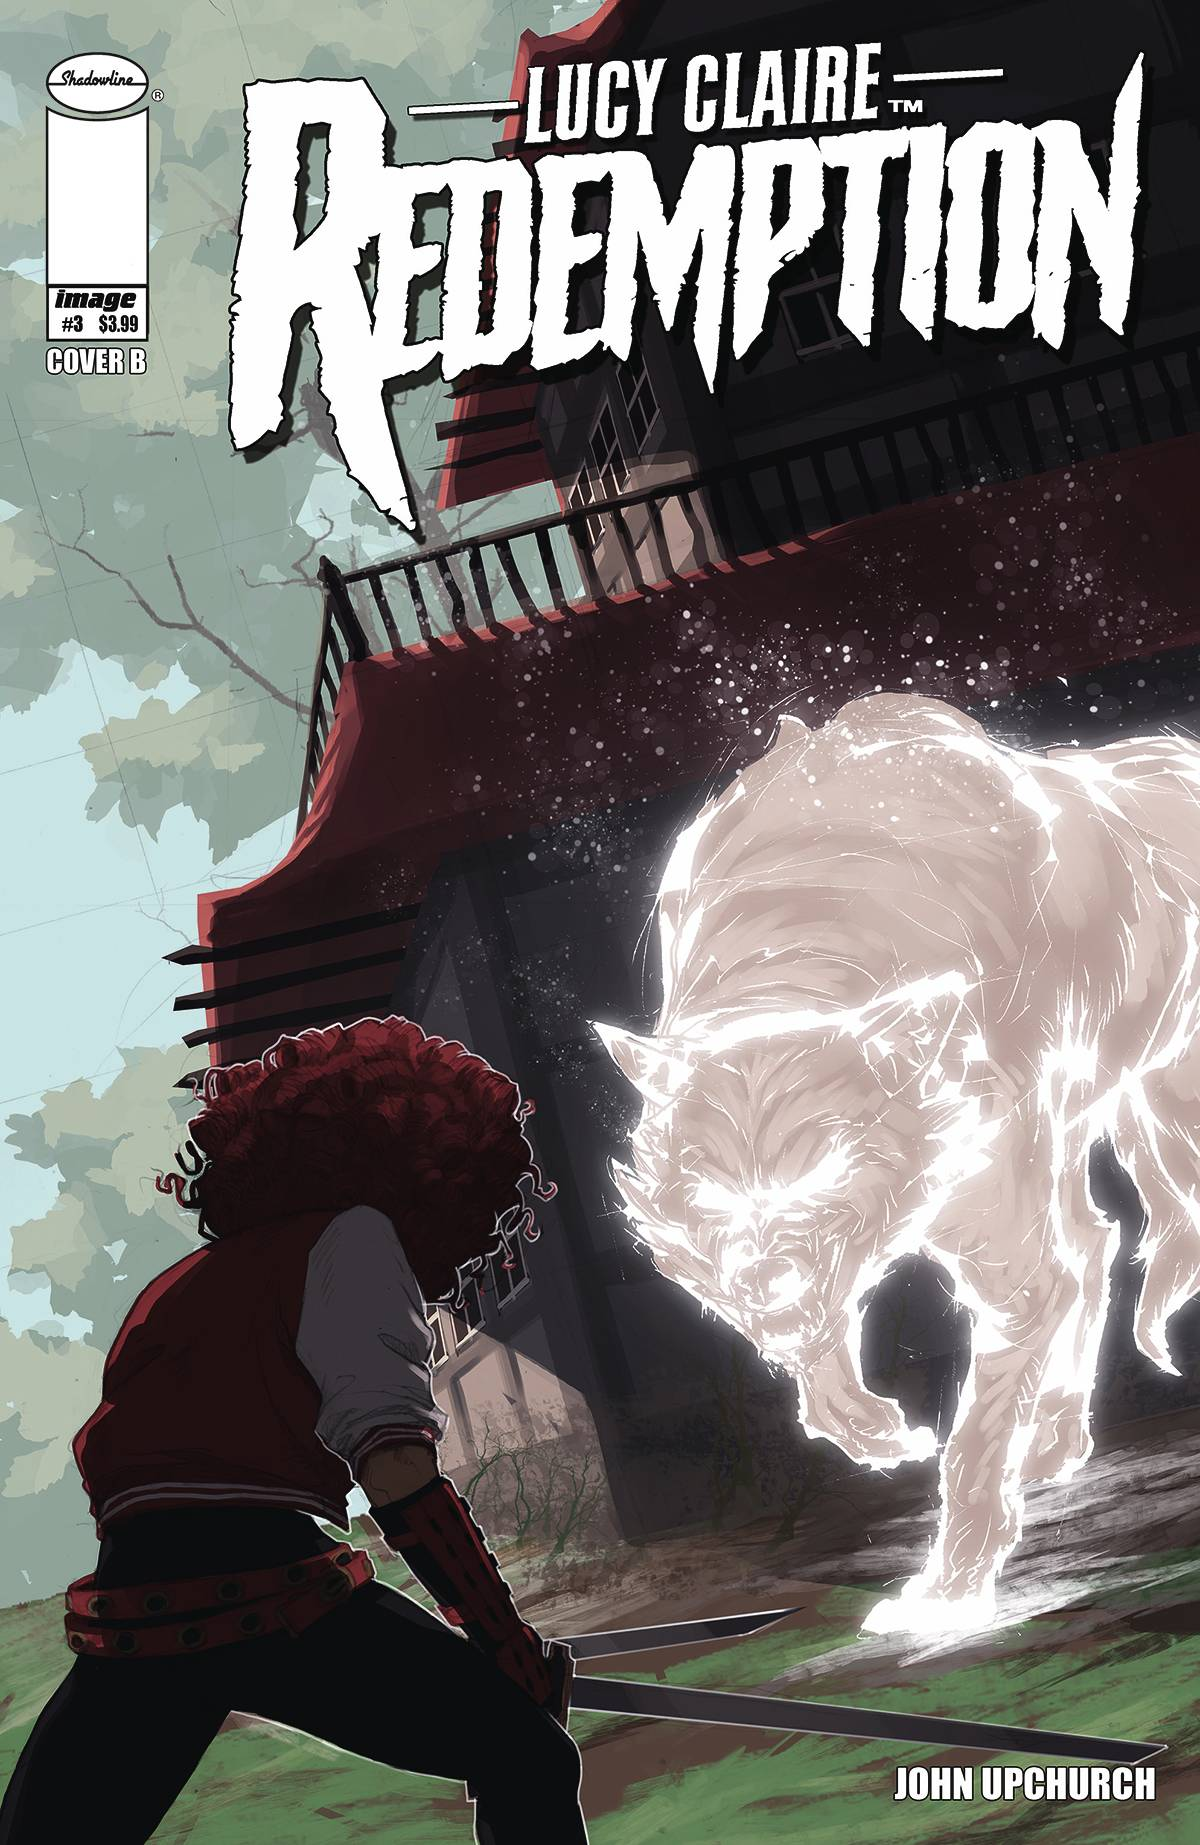 Lucy Claire Redemption (2019) #03 (John Upchurch Variant)